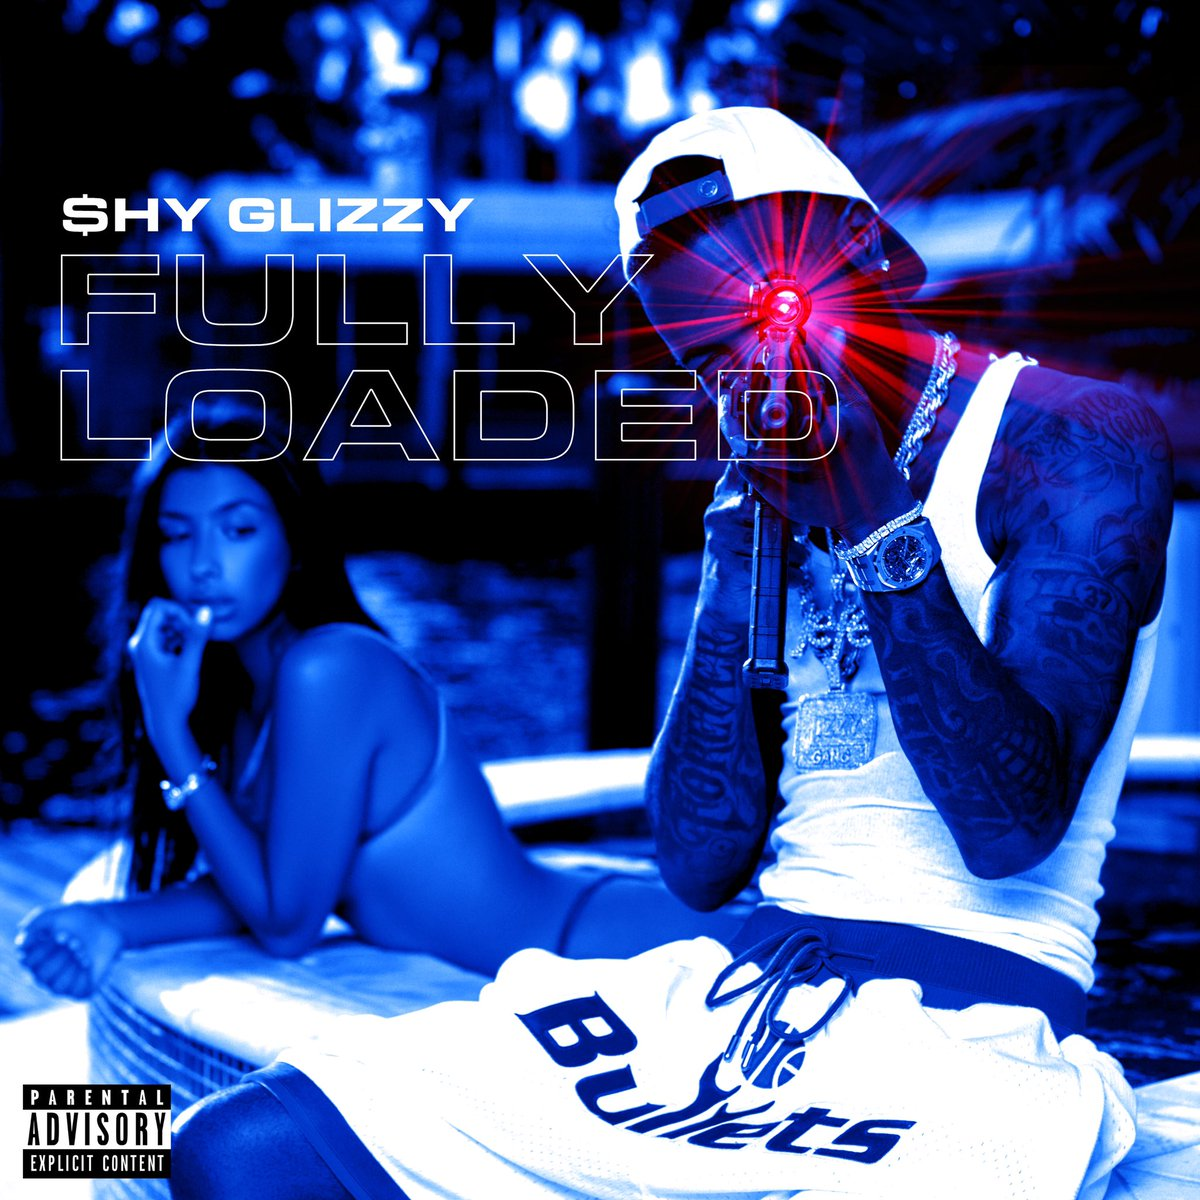 Shy Glizzy Reveals Artwork, Tracklisting for 'Fully Loaded'